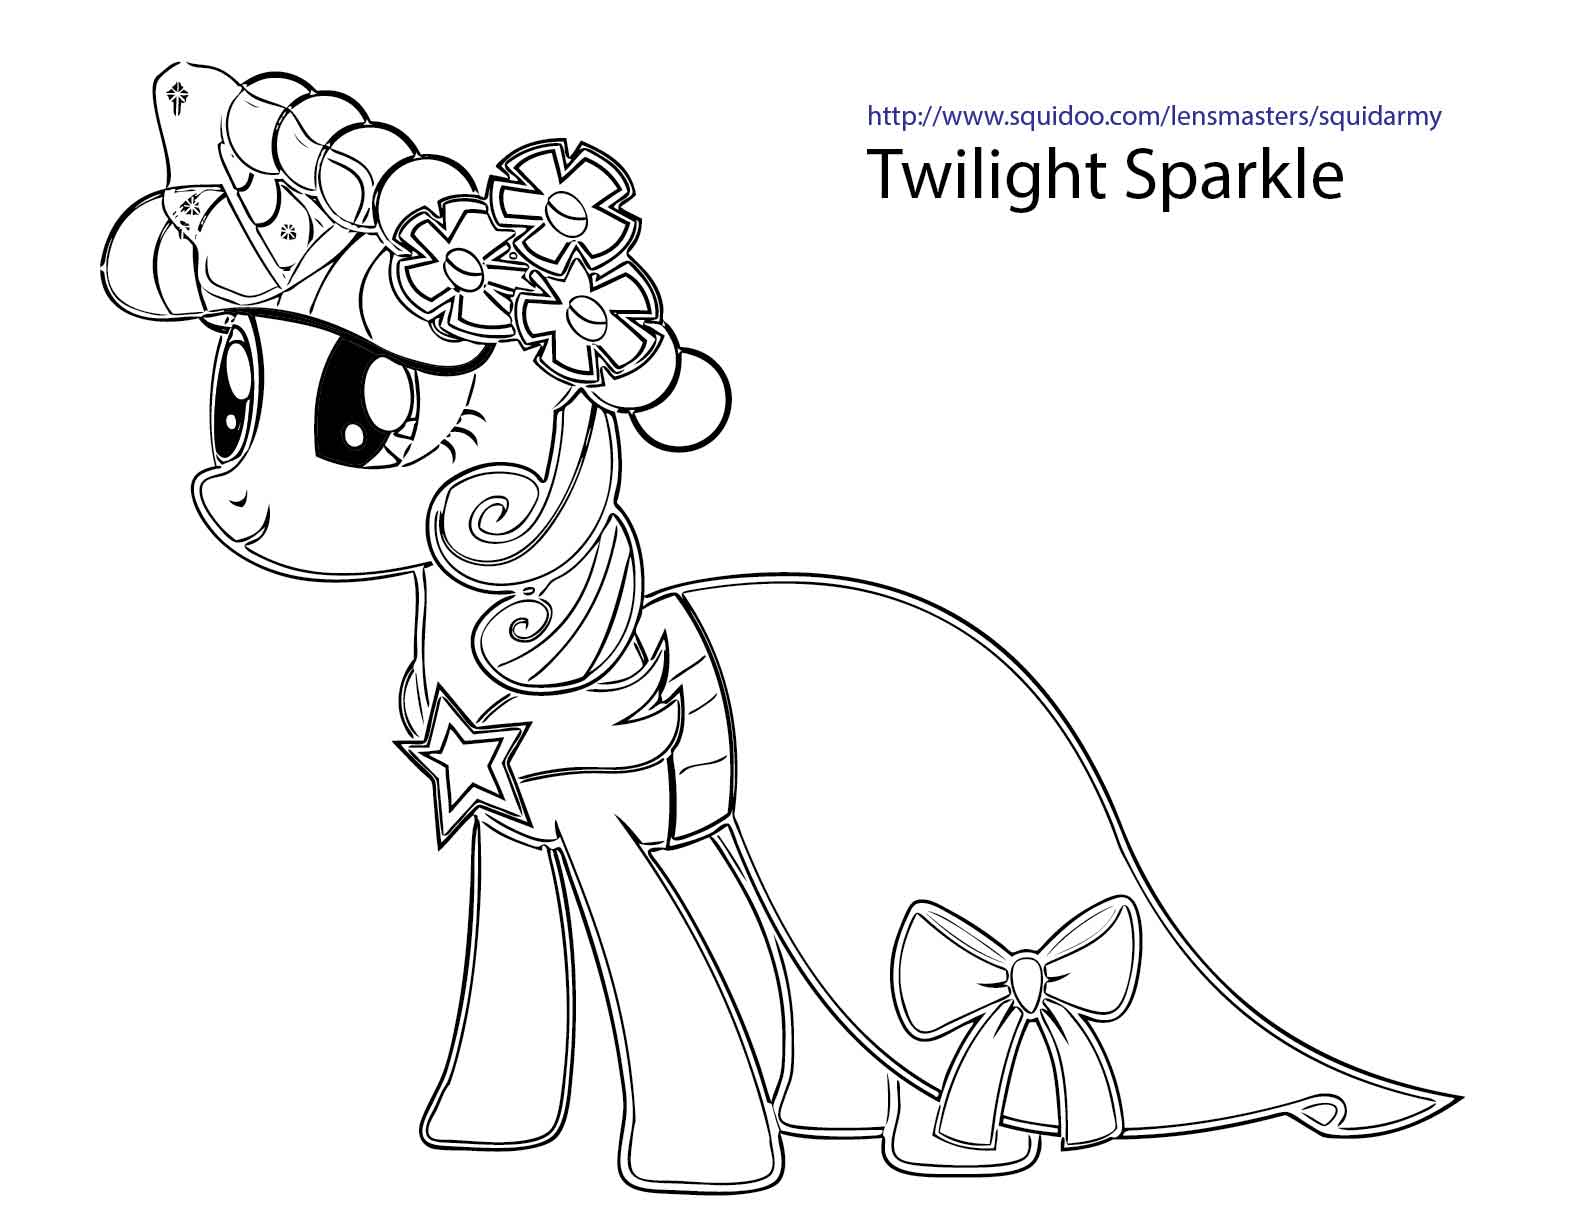 Equestria girls twilight sparkle coloring pages ~ Twilight Sparkle Equestria Girls Coloring Pages - Coloring ...